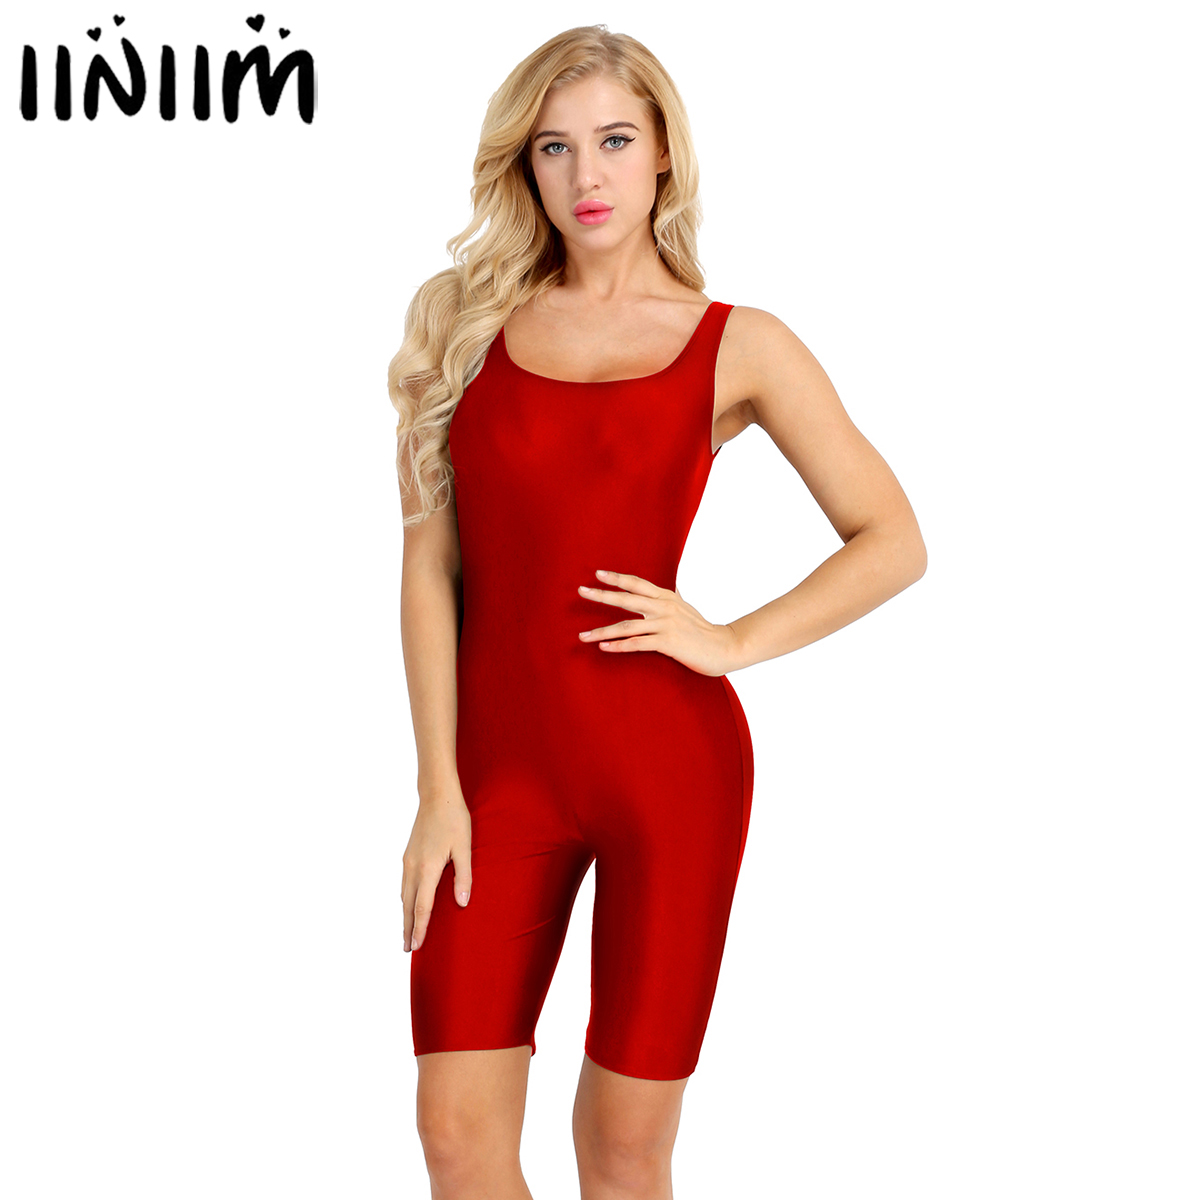 Womens Sleeveless Bodycon Ballerina Costumes Stretch Skinny Solid Sports Active Dance Gymnastics Leotard Bodysuit Jumpsuit